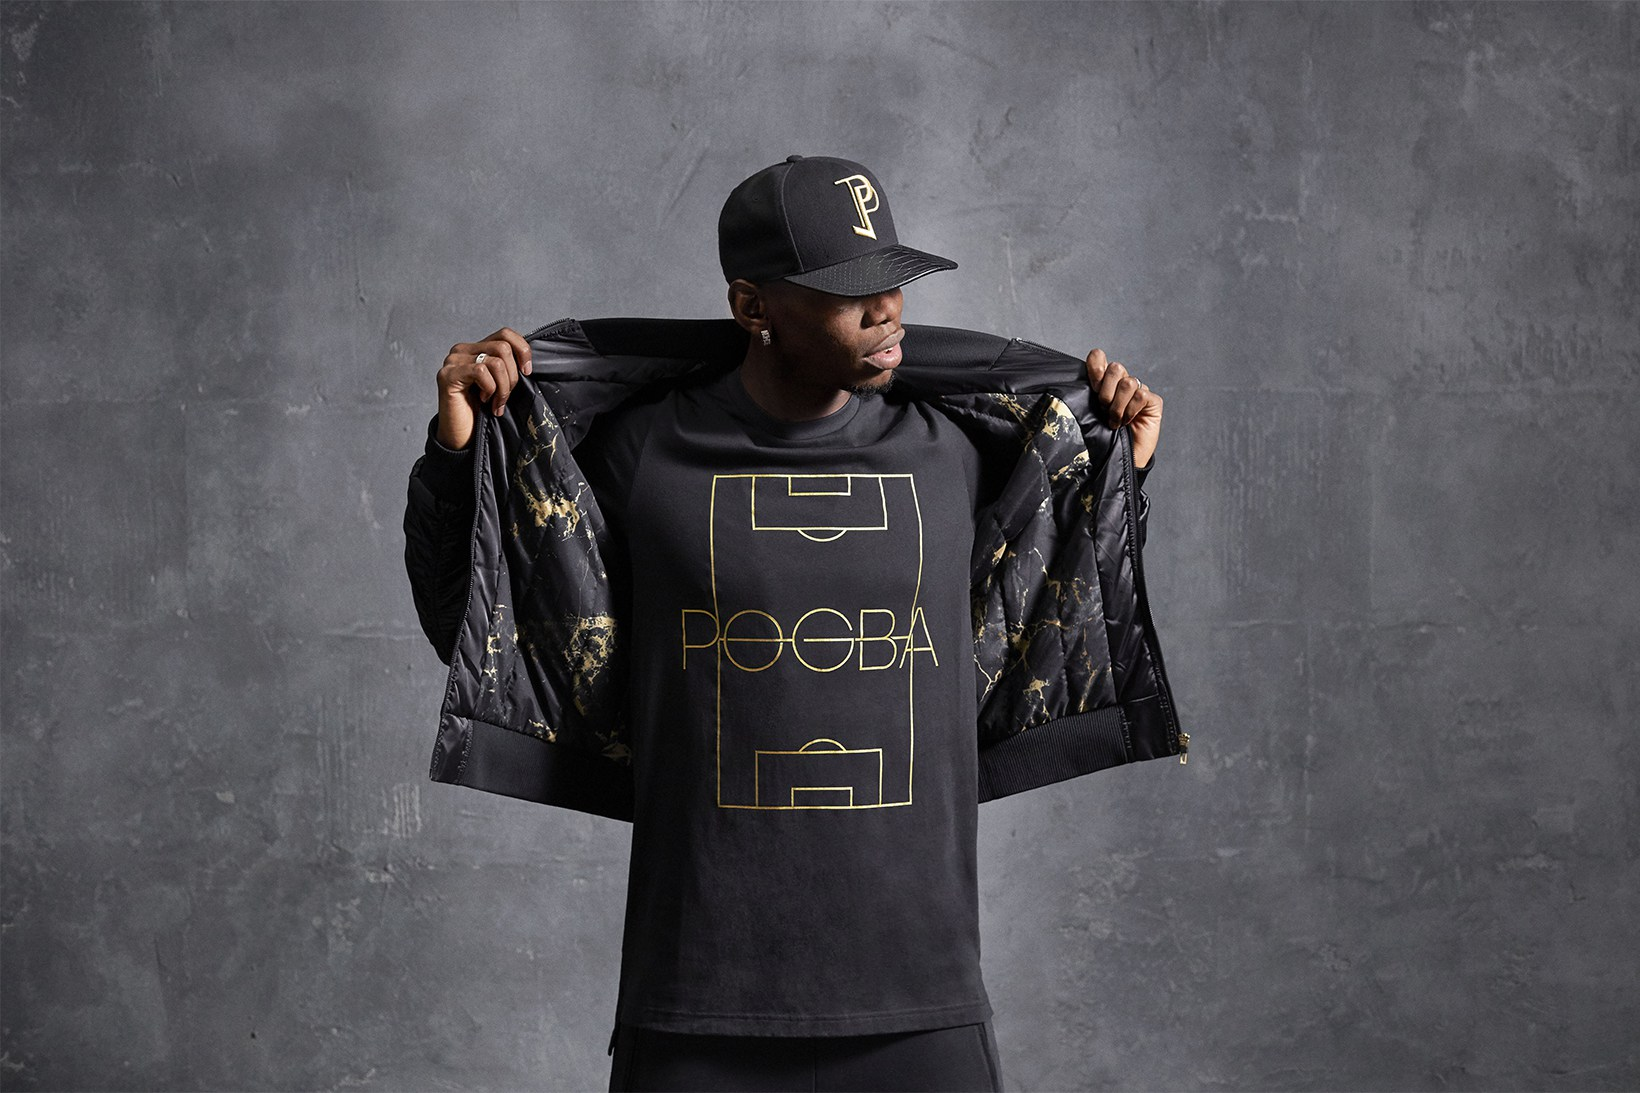 e132c15d3 The Paul Pogba x Adidas Football collection officially launched exclusively  at Parisian boutique Colette on January 16th. You can also shop the  collection ...